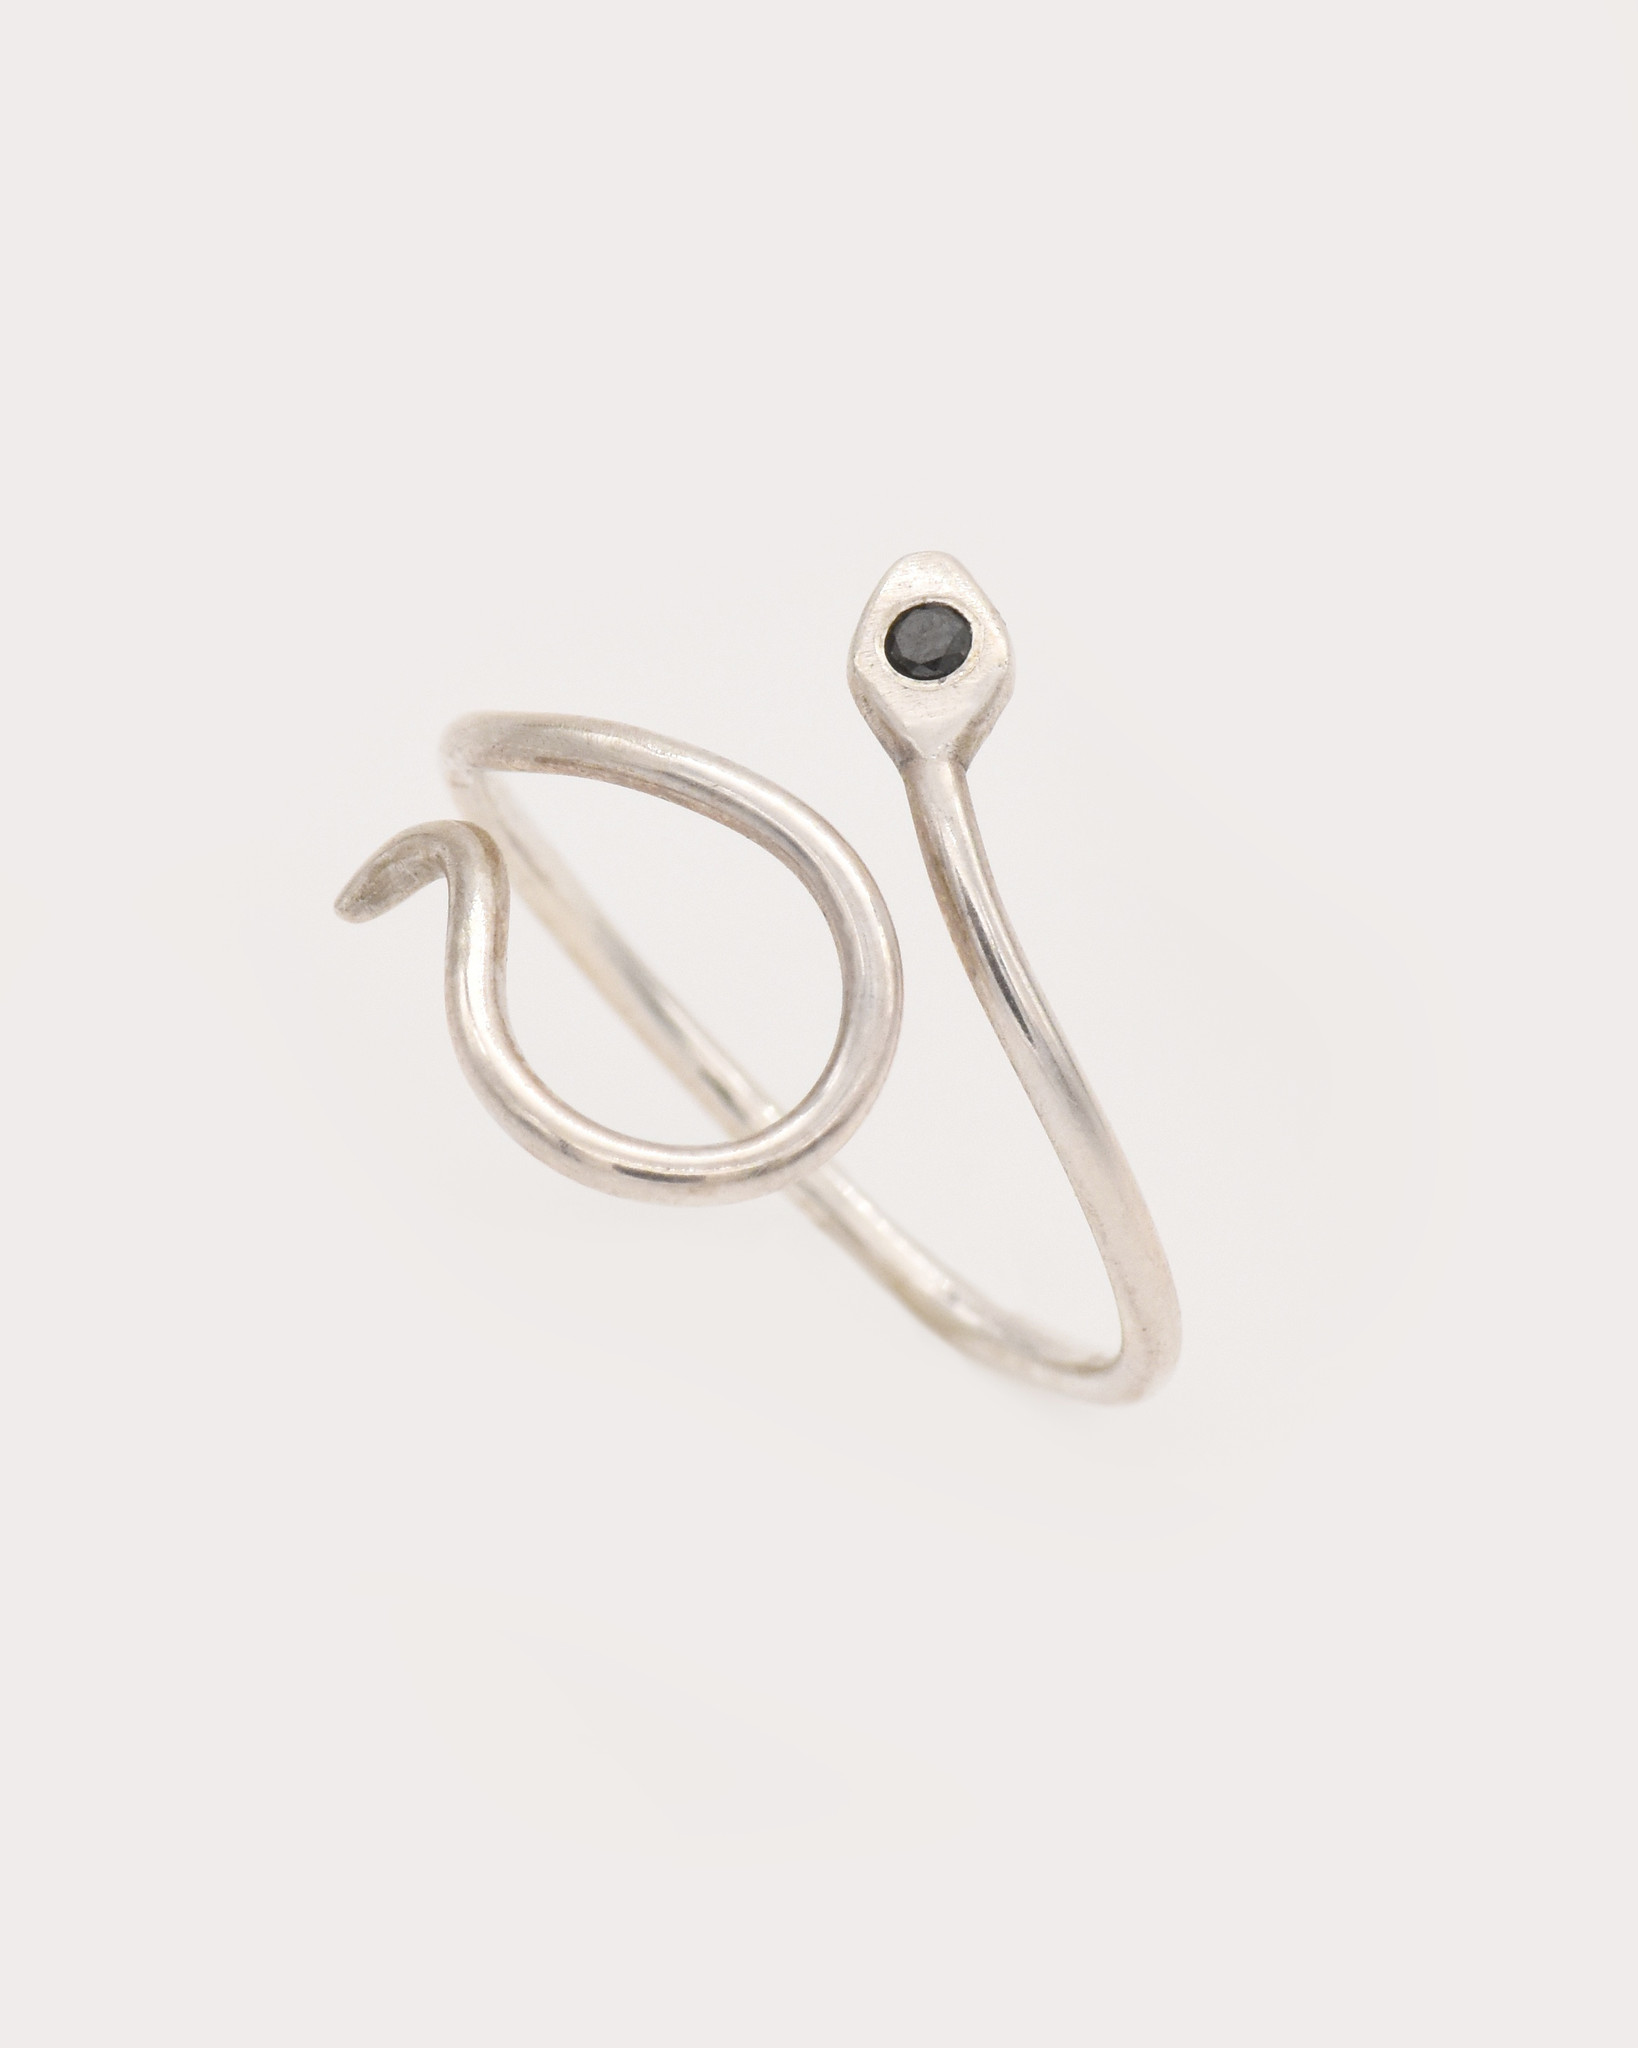 Adriatic Curved Snake Ring